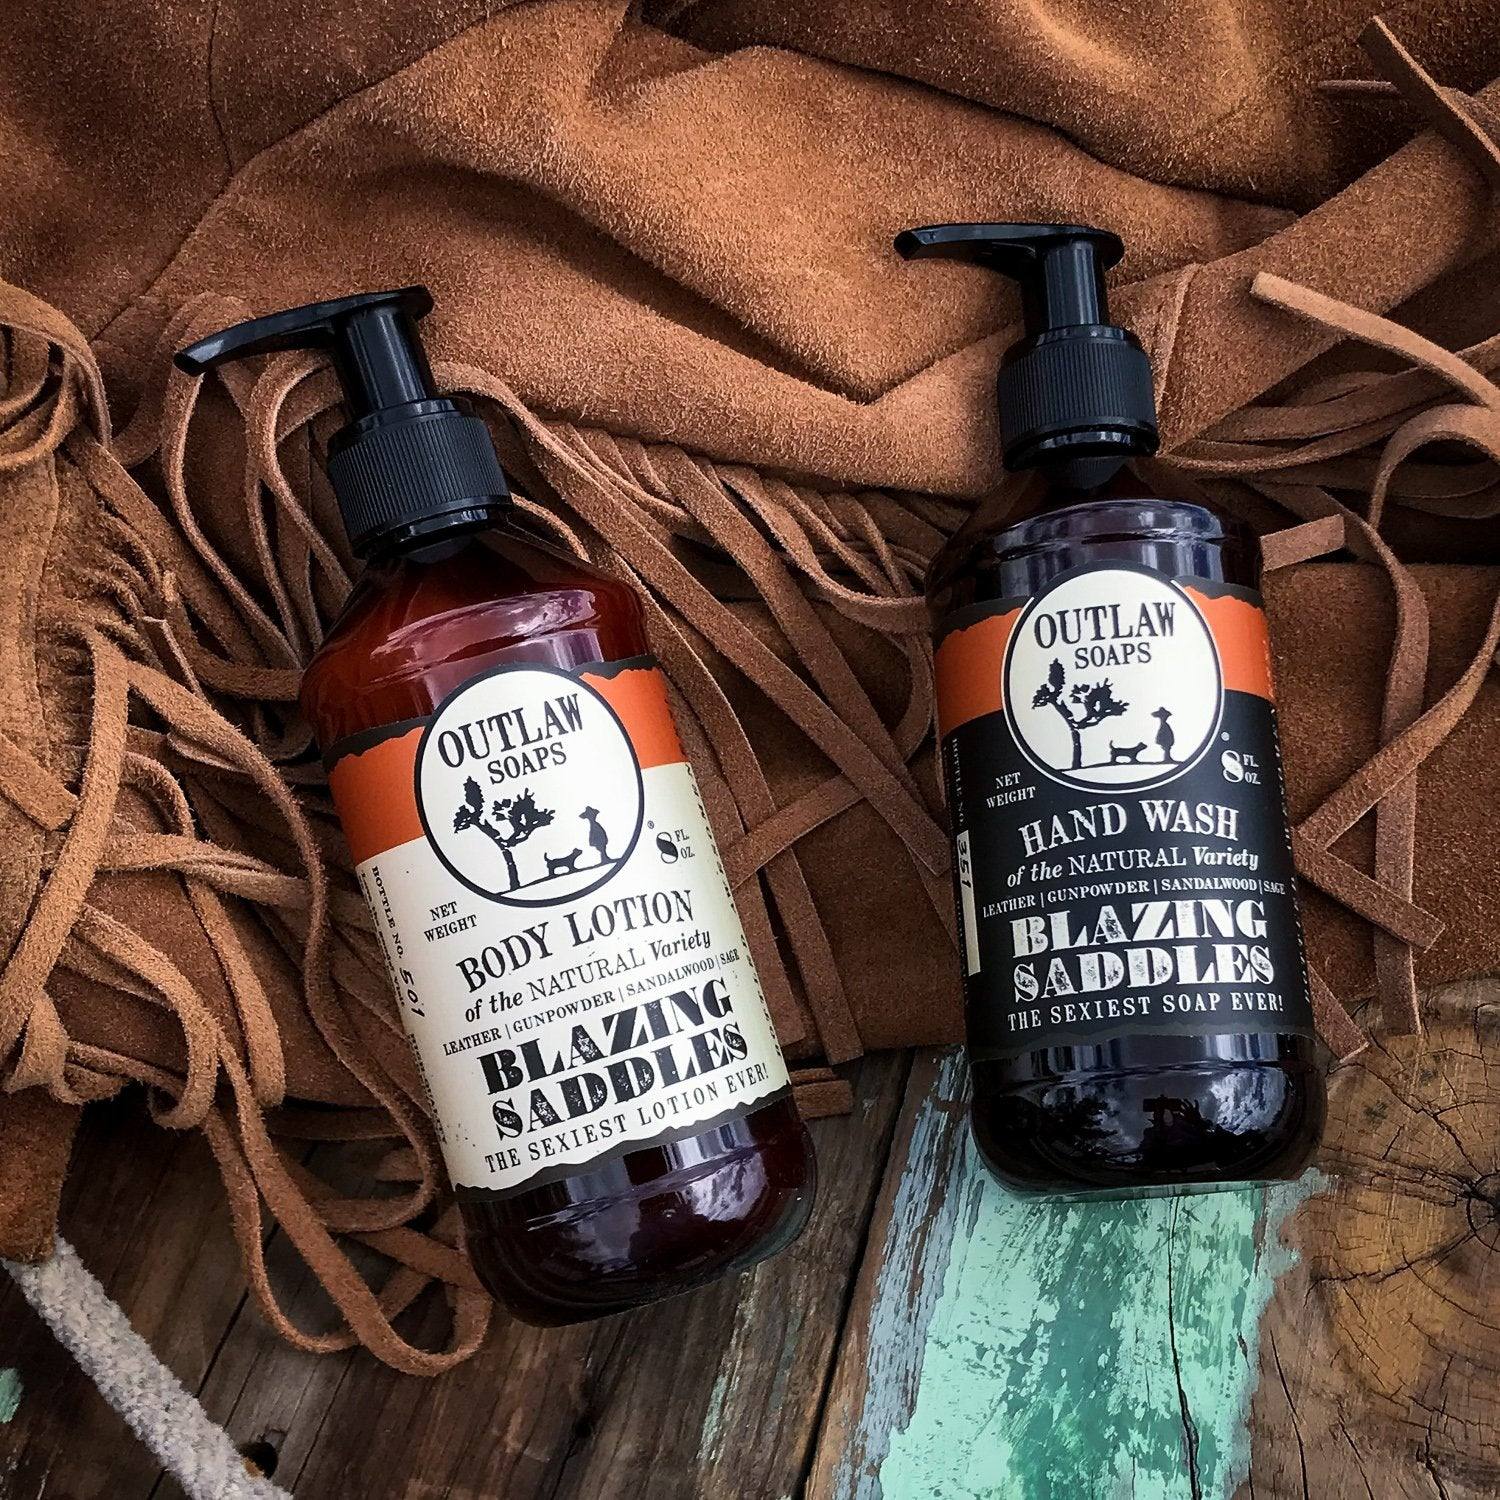 Blazing Saddles Hand Wash and Lotion Set Hand Wash & Lotion Set The Sexiest Scent Ever: Warm Leather | Gunpowder | Sagebrush | Sandalwood